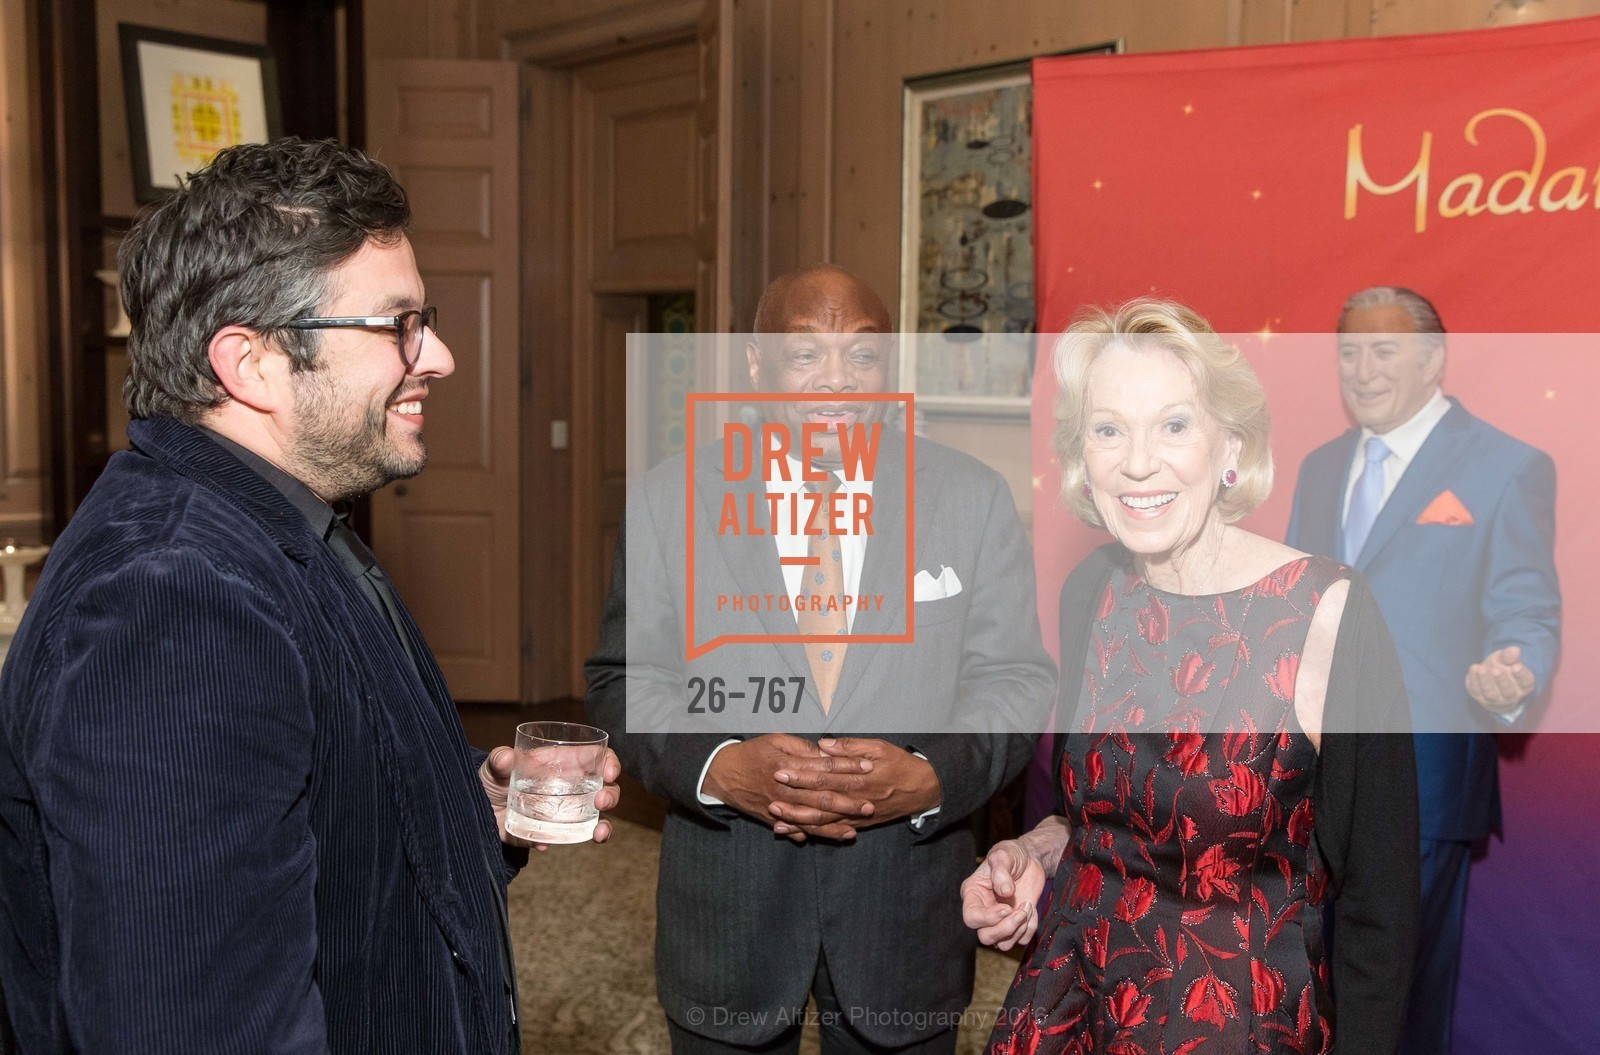 Matthew Goudeau, Willie Brown, Charlotte Shultz, A Special Reception with Tony Bennett, The Fairmont, San Francisco, The Penthouse Suite, January 26th, 2016,Drew Altizer, Drew Altizer Photography, full-service agency, private events, San Francisco photographer, photographer california